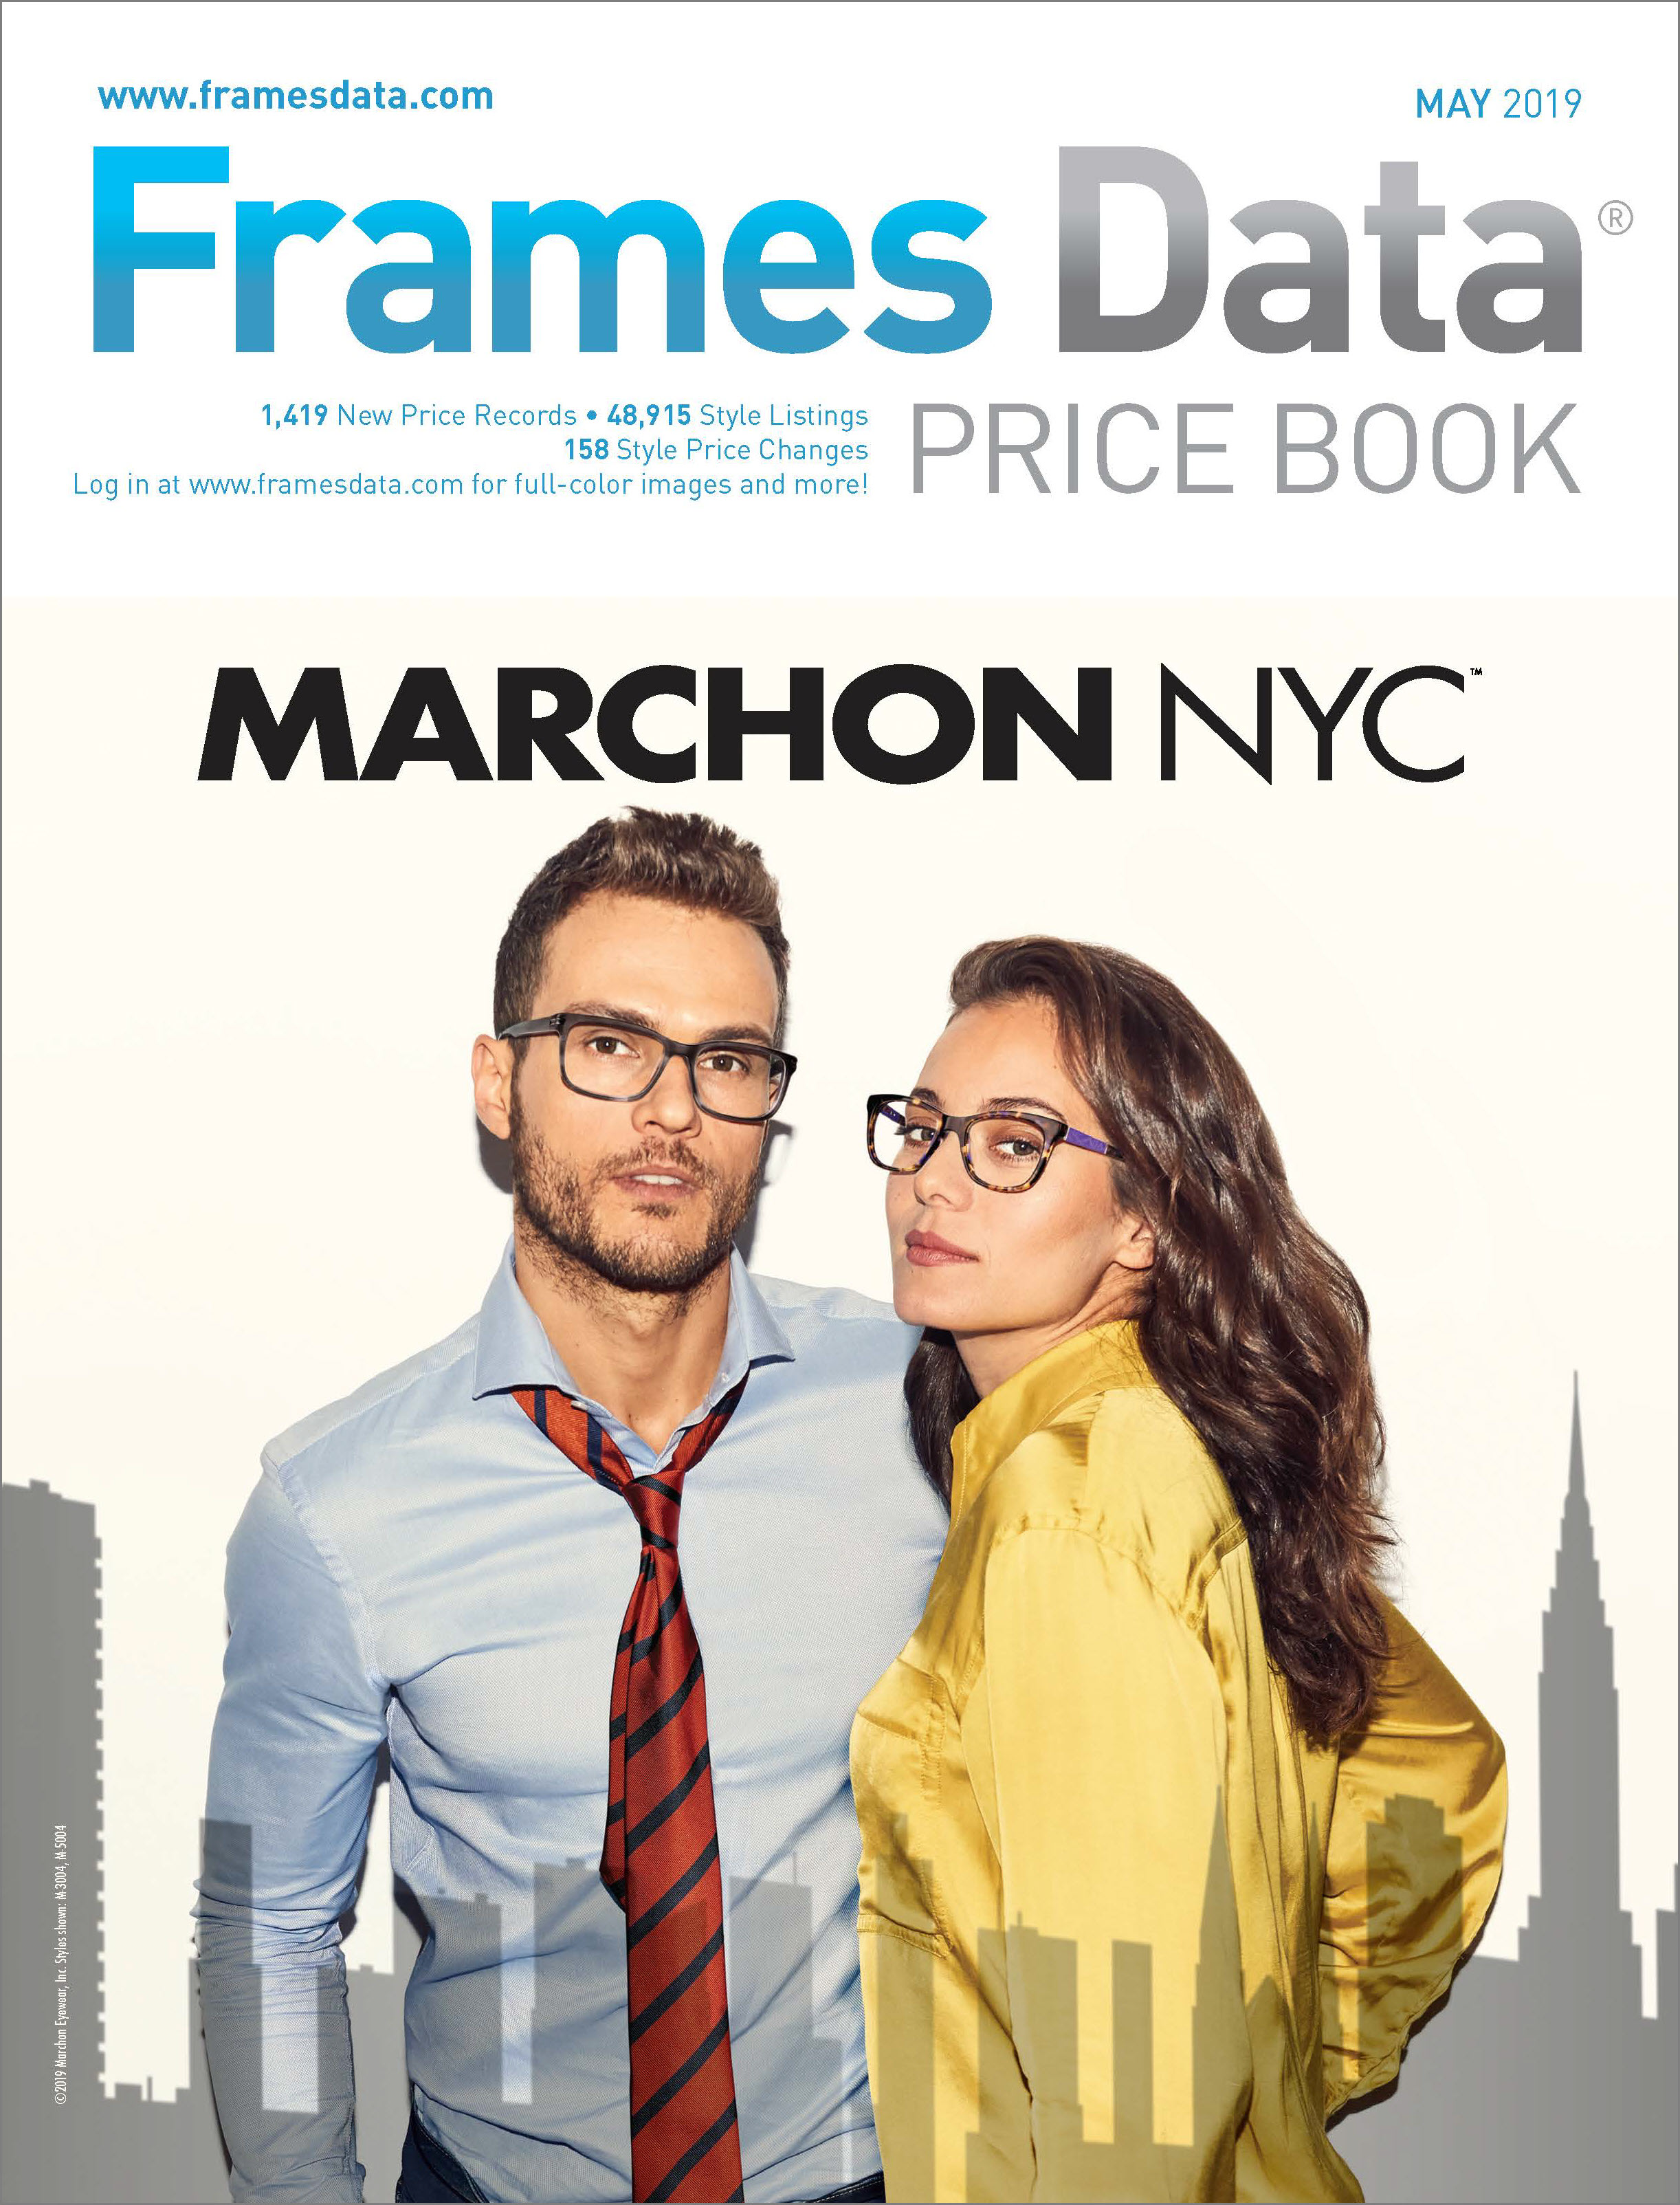 May Price Book features Marchon NYC by Marchon®